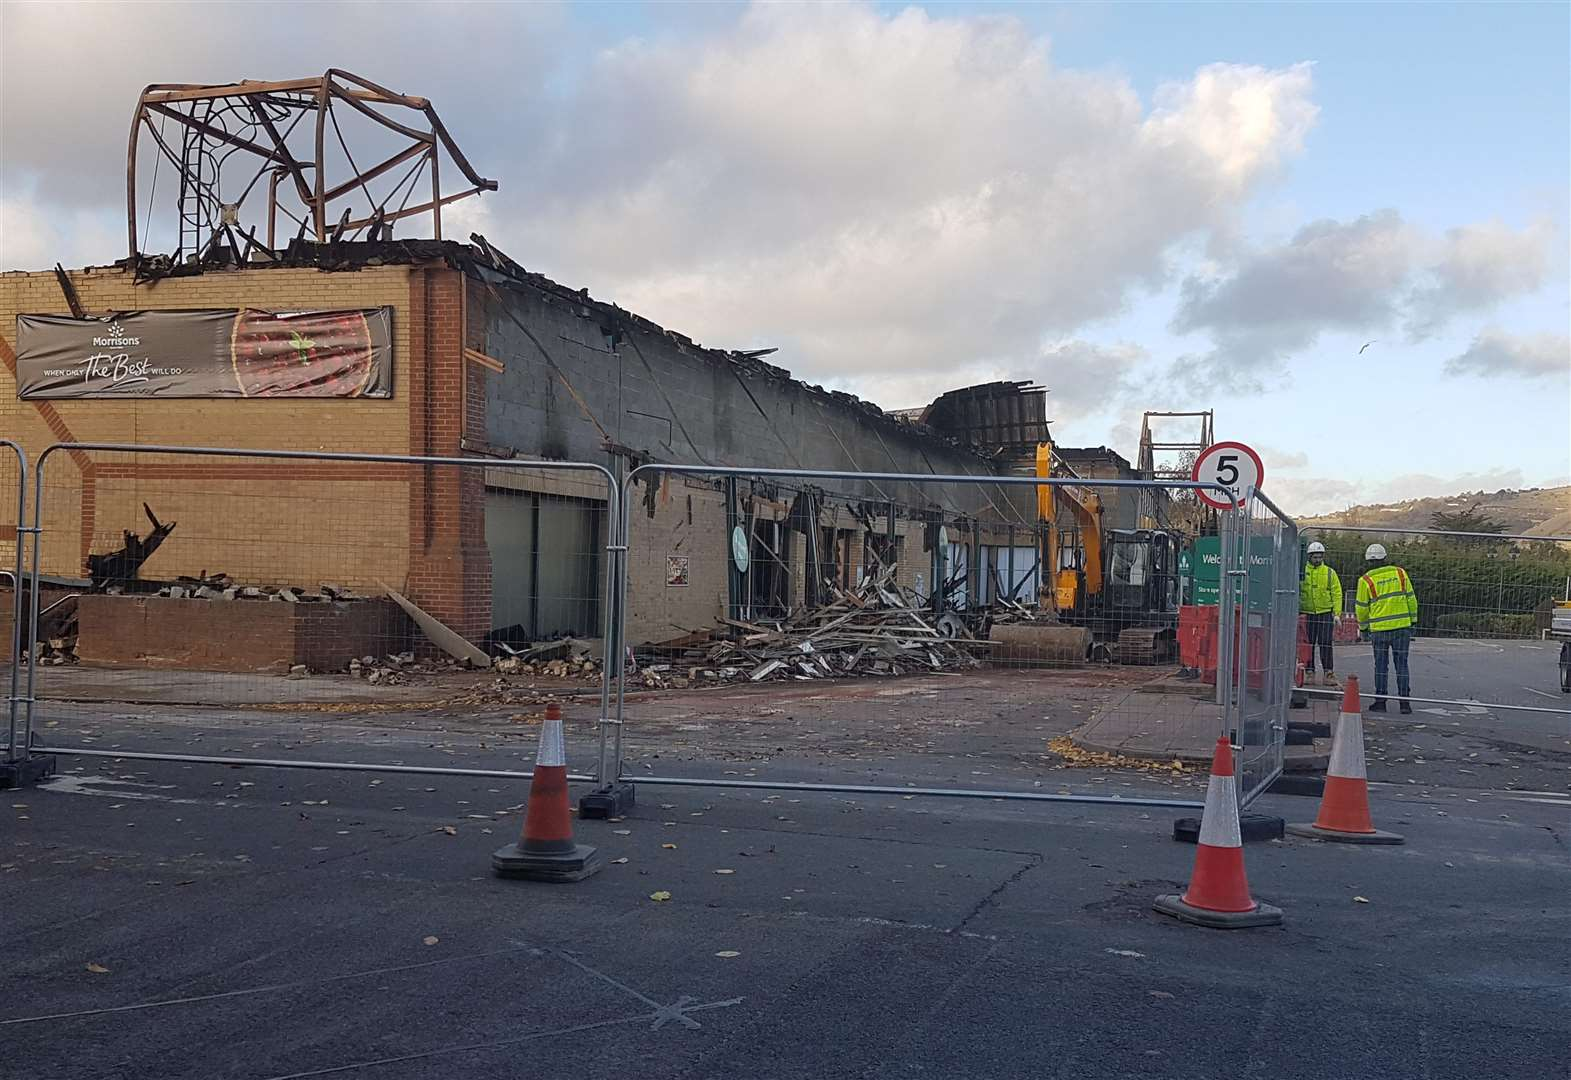 Jobs Safe And Plans Being Made After Morrisons Fire In